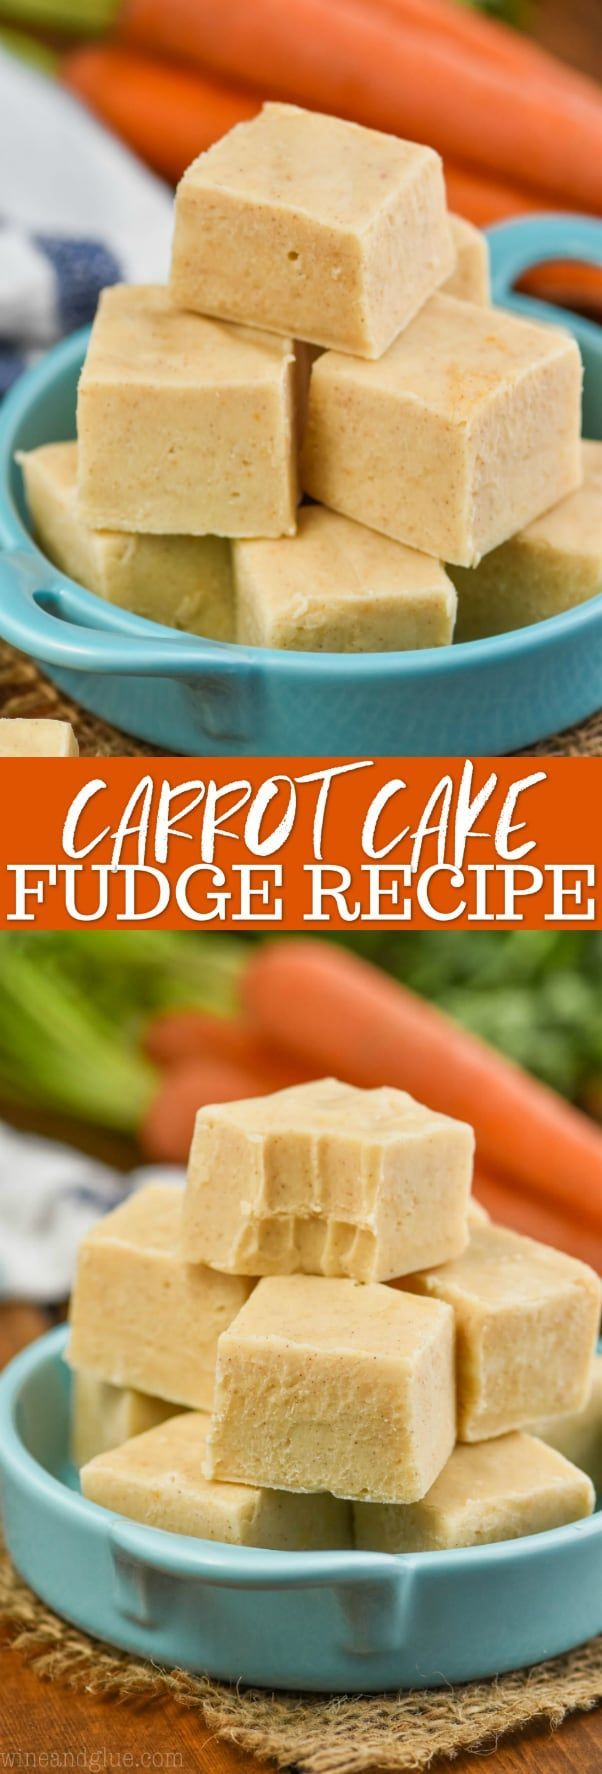 Carrot Cake Fudge (Secret Ingredient!) - Wine & Glue